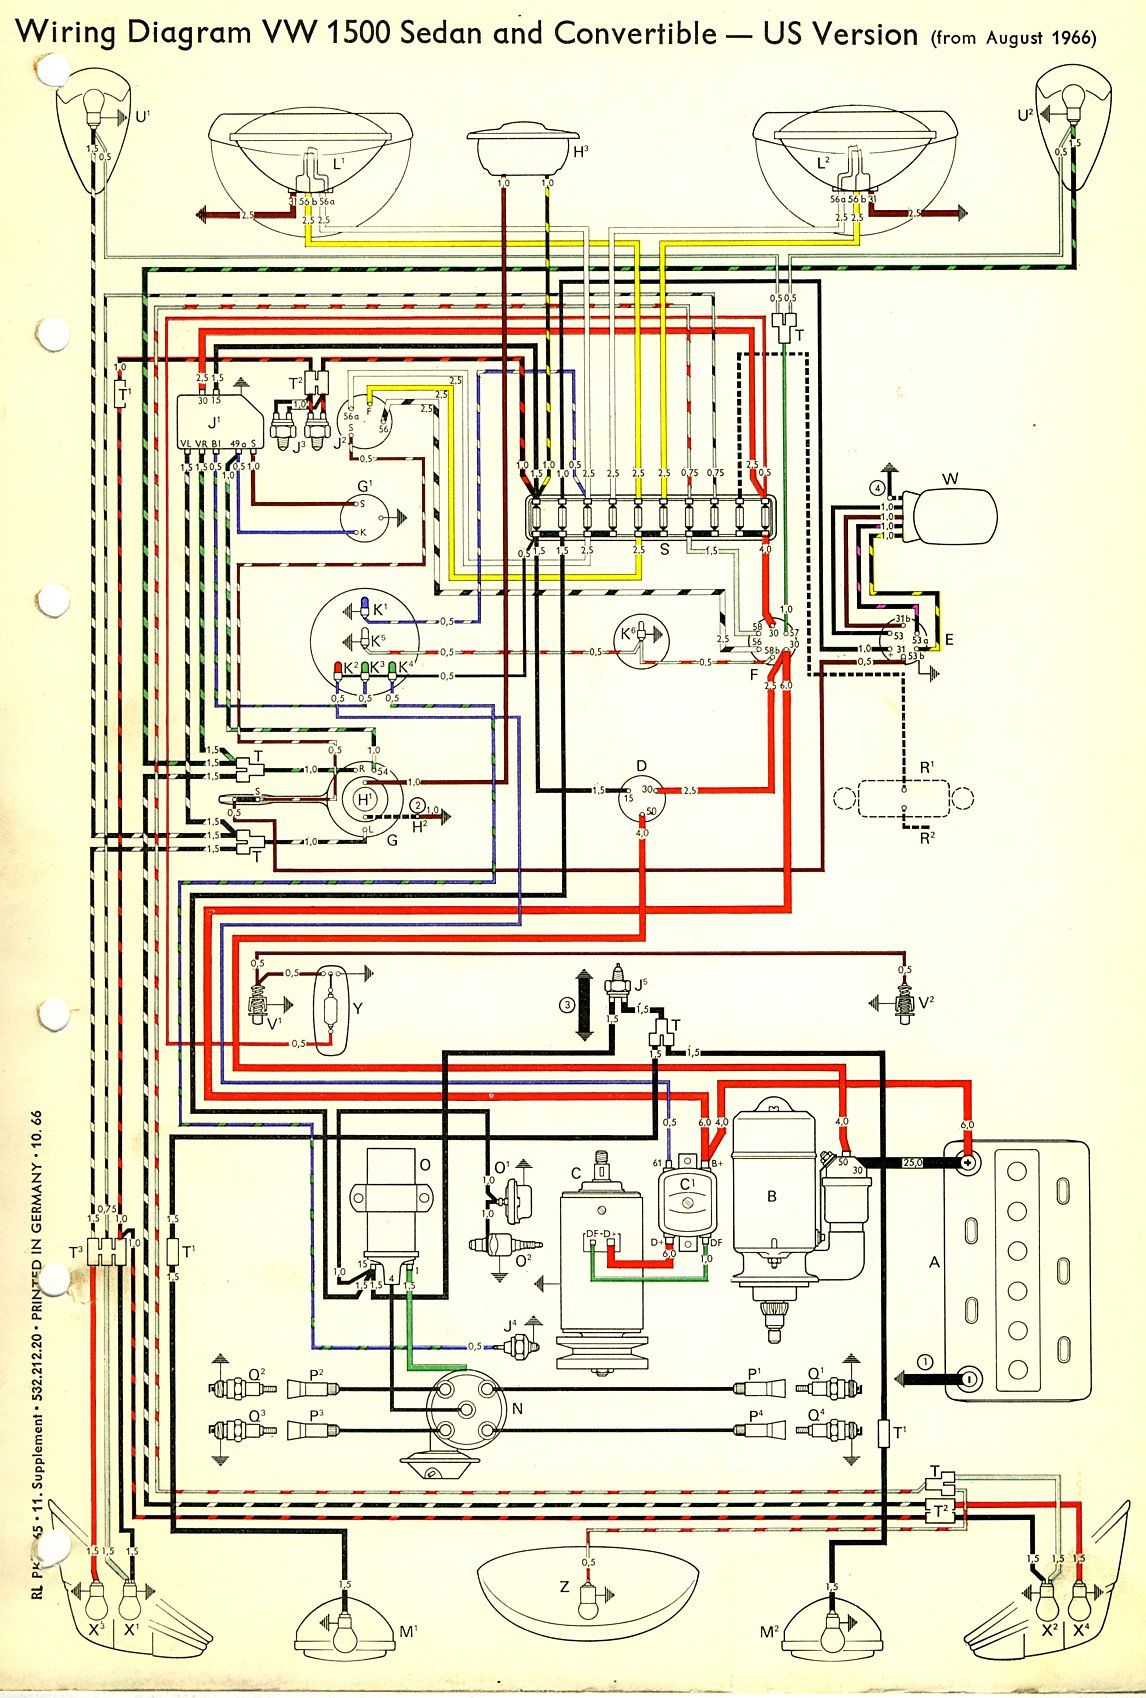 72 beetle engine diagram z3 wiring library diagramwiring diagram for 1967 vw beetle wiring diagrams people in a 72 beetle 72 beetle engine diagram